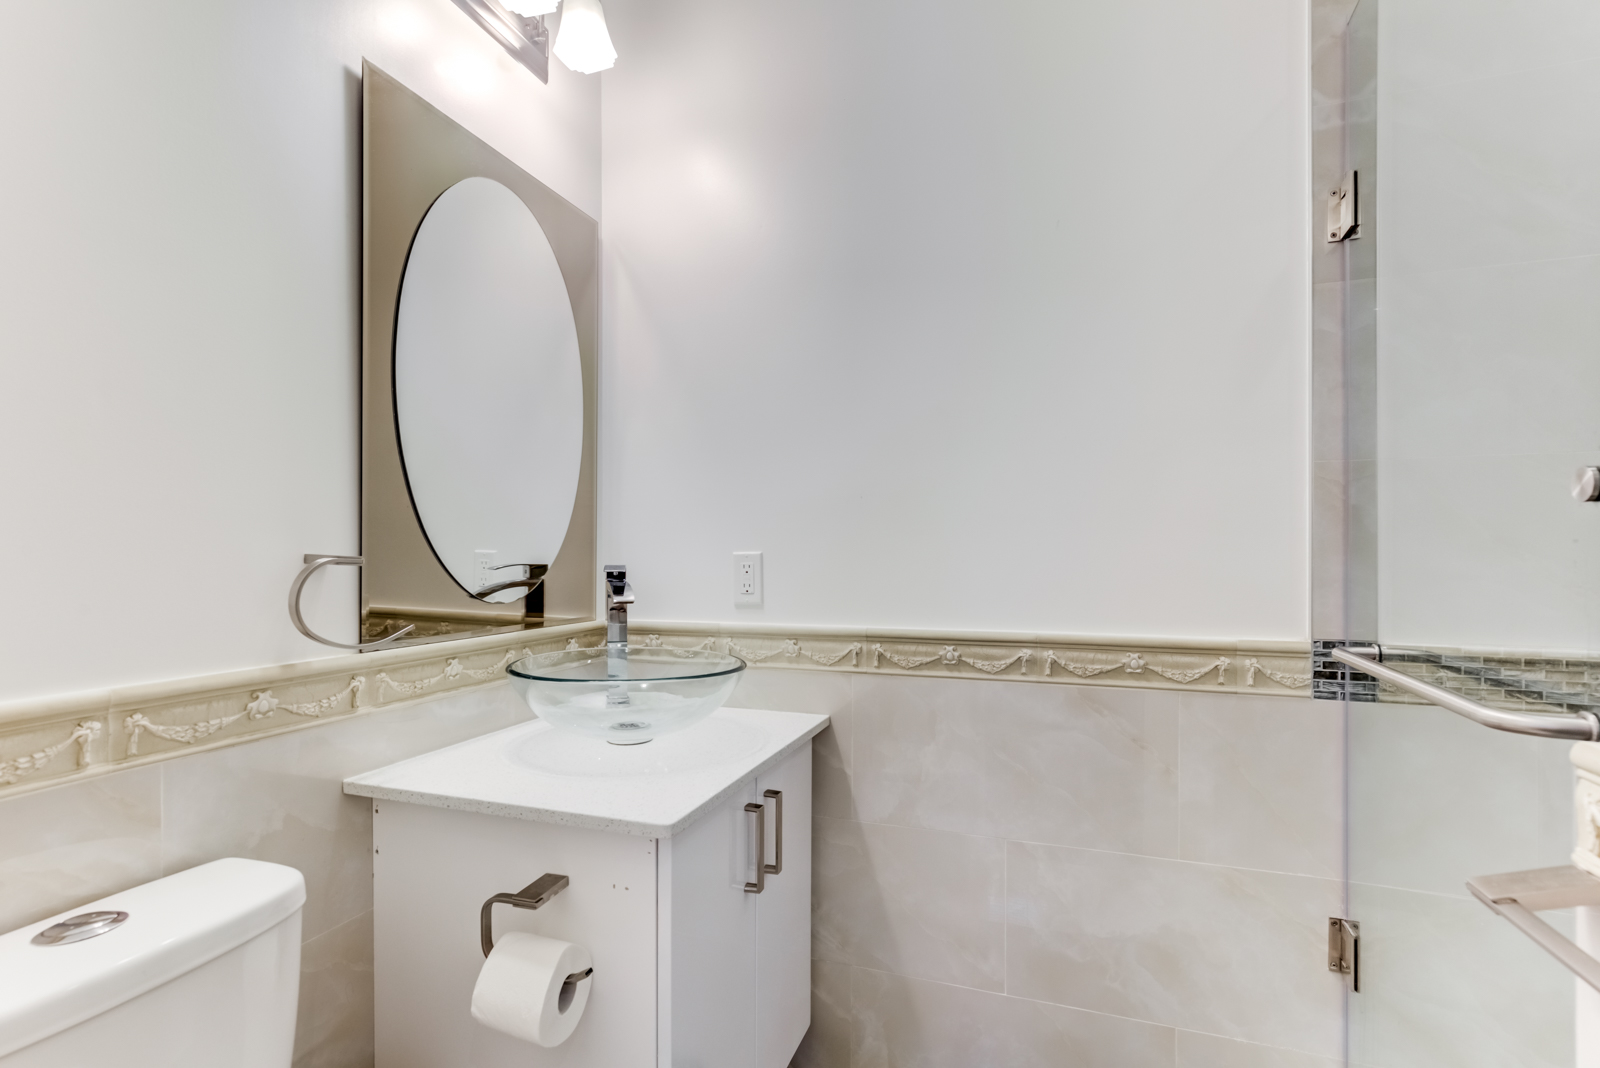 Renovated bathroom at 120 McGill St with white vanity, oval mirror and walk-in shower.